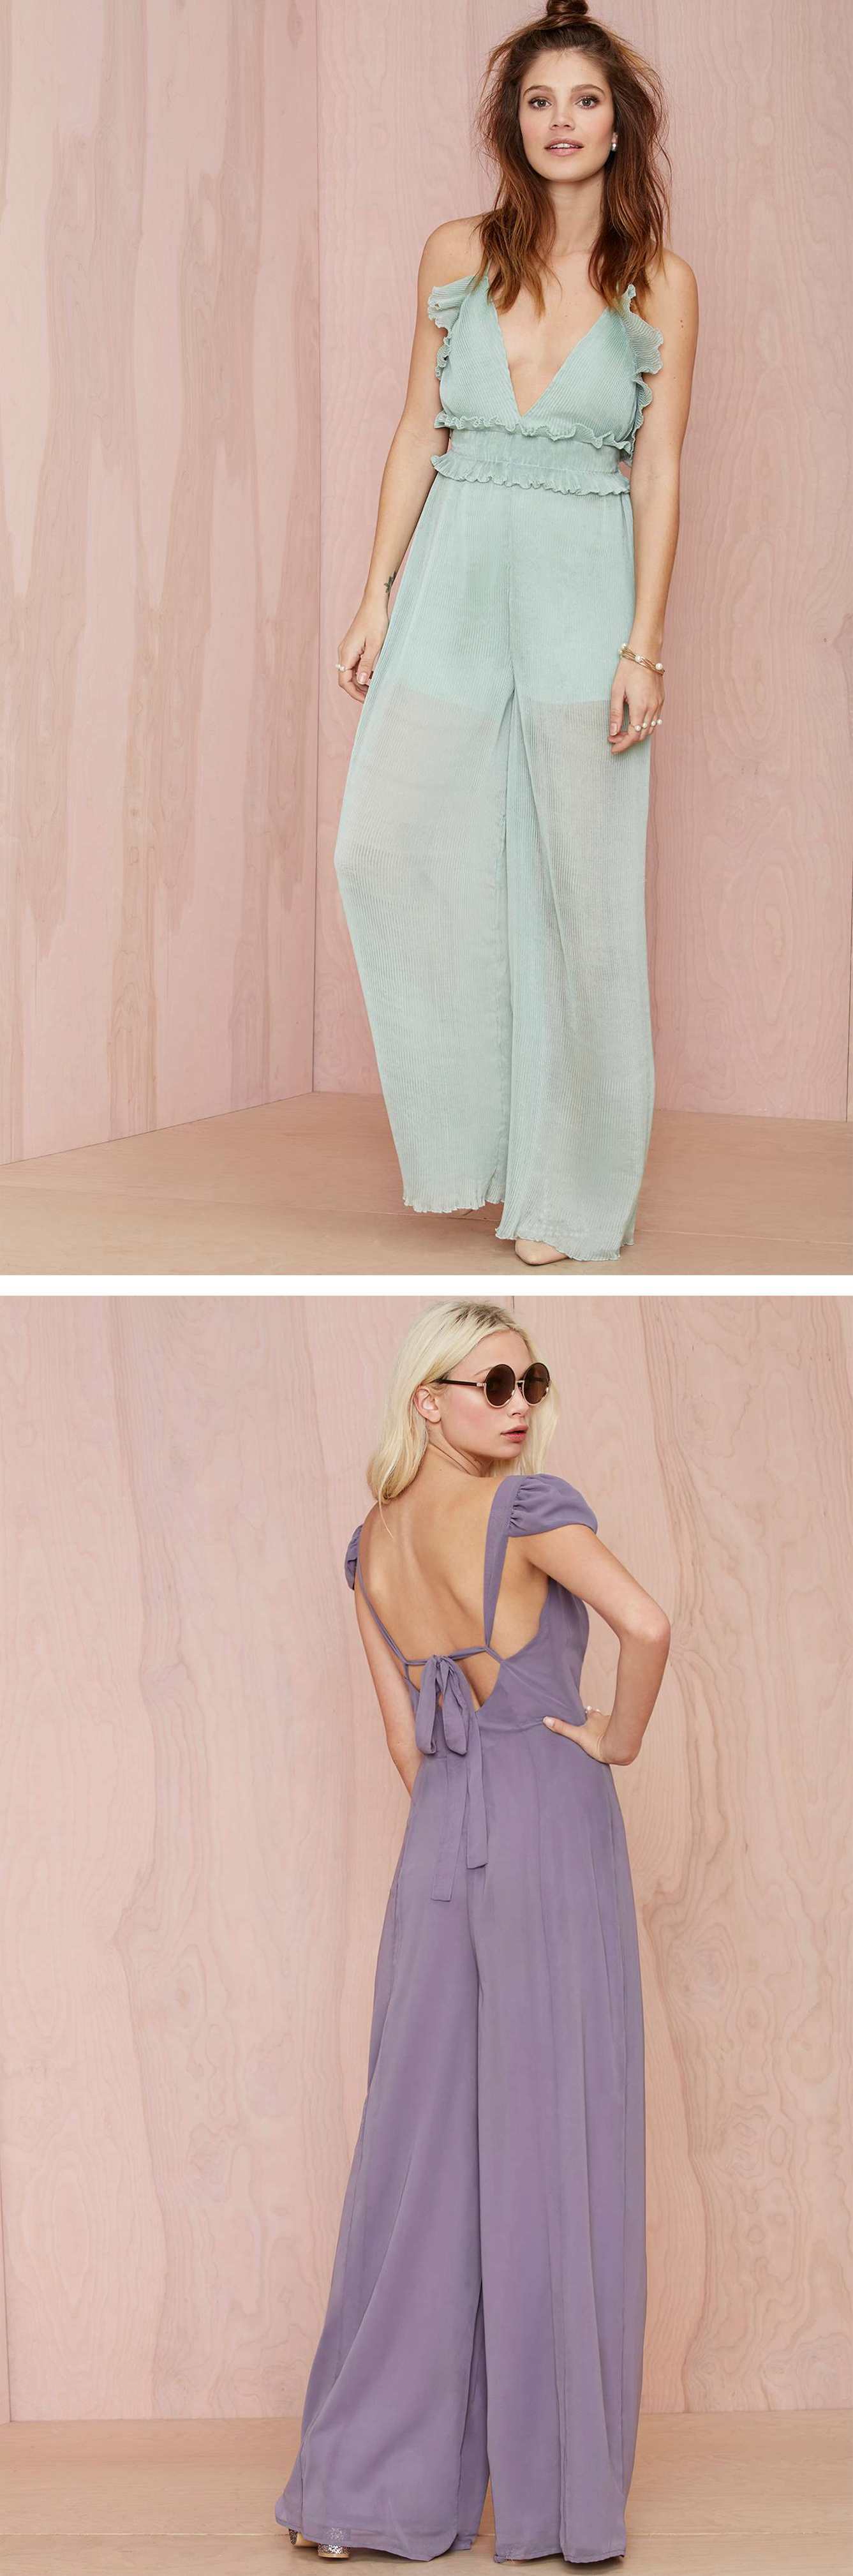 Sweeten up your look with perfectly ruffled jumpsuits.